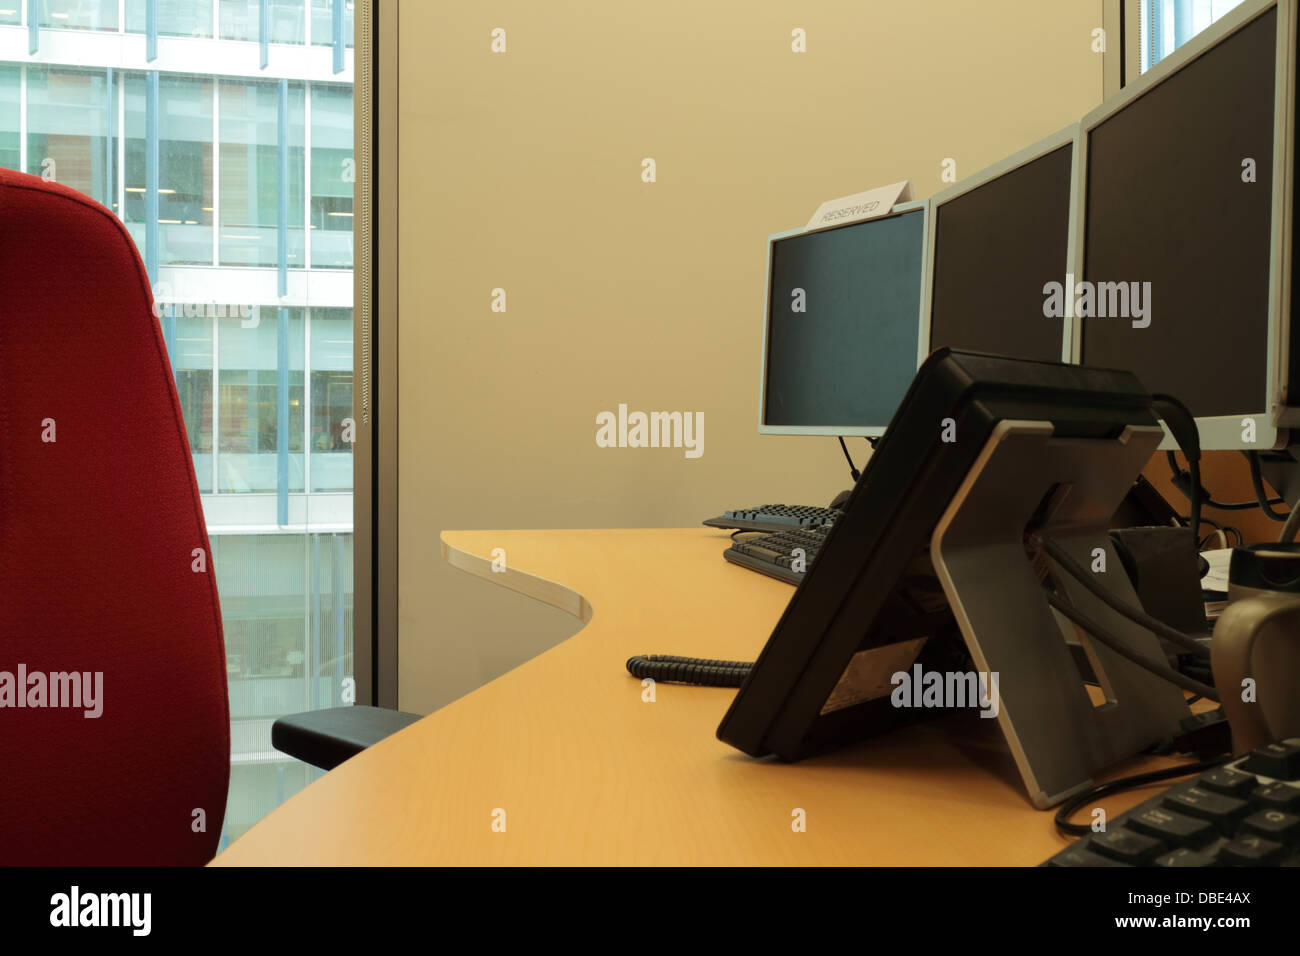 Office desks with multiscreens - Stock Image